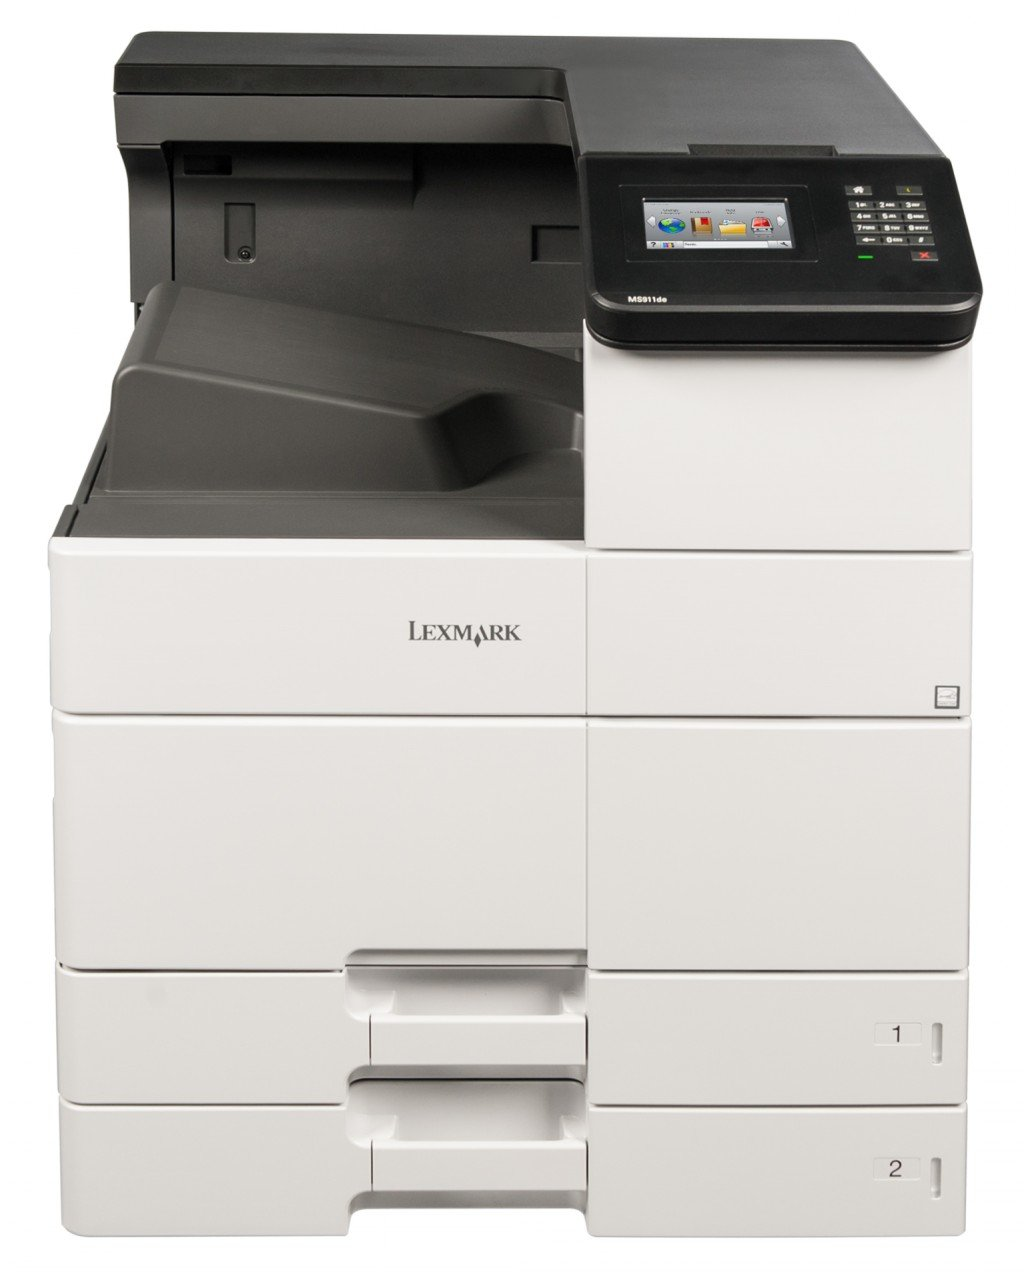 Amazon.com: Lexmark MS911de: Computers & Accessories